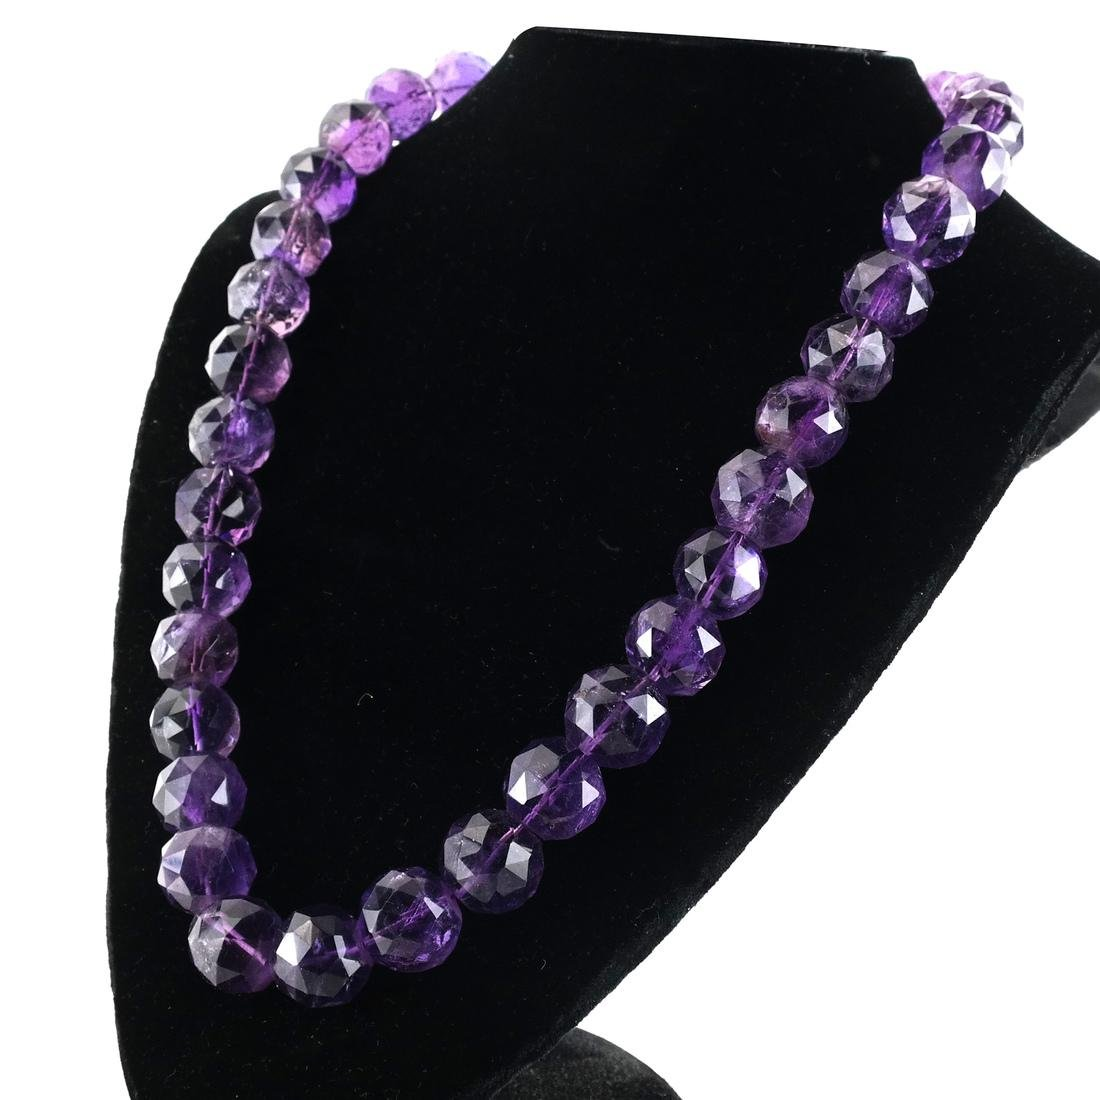 Early to Mid-20th C. Amethyst Bead Necklace - 4